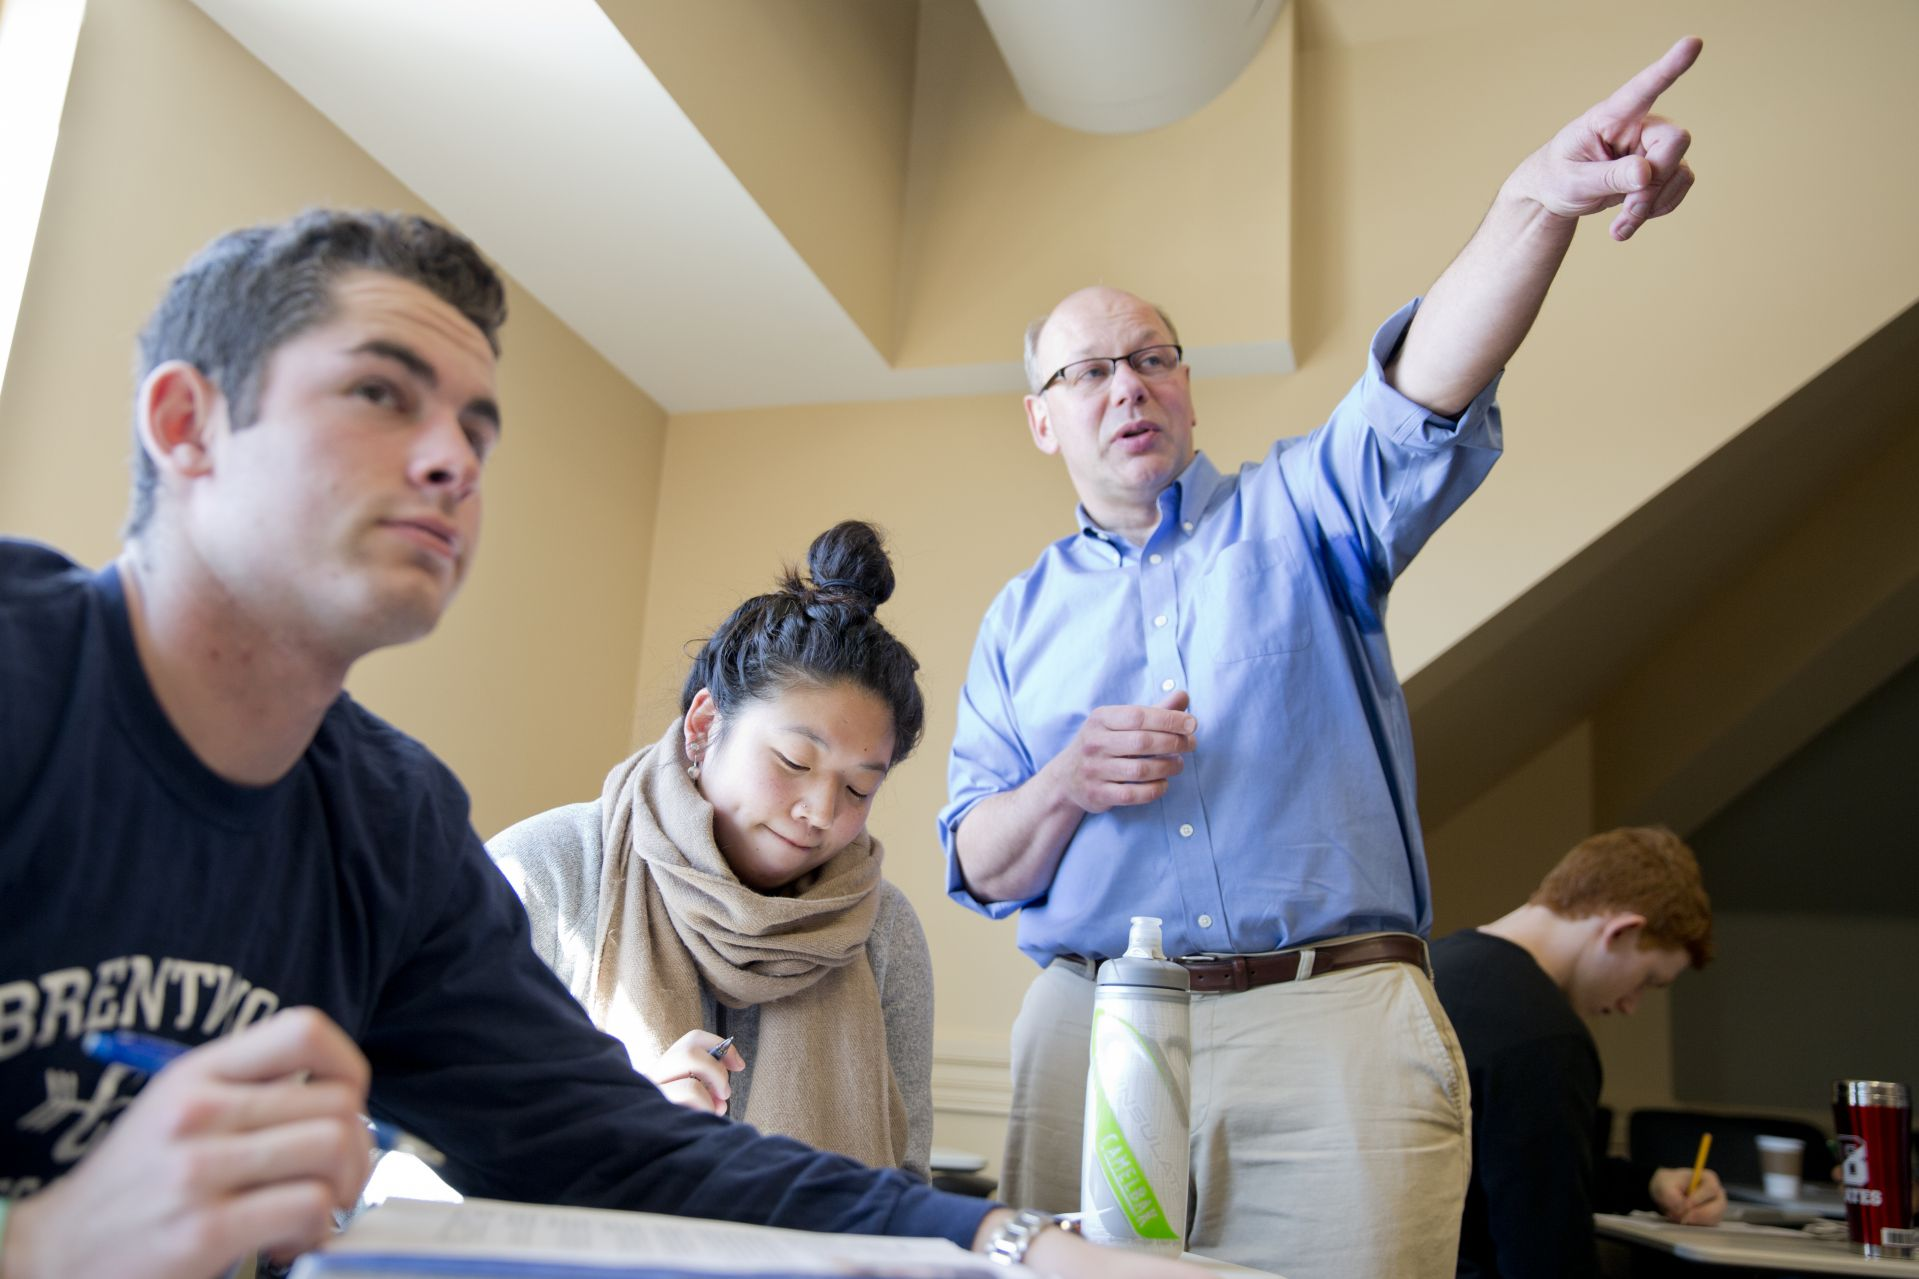 Professor of French and Francophone Studies Alexandre Dauge-Roth, right,  teaches a class in 2015. That year, the relationship between Bates and ILAP began  when Dauge-Roth invited an ILAP leader to speak to his class. (Phyllis Graber Jensen/Bates College)